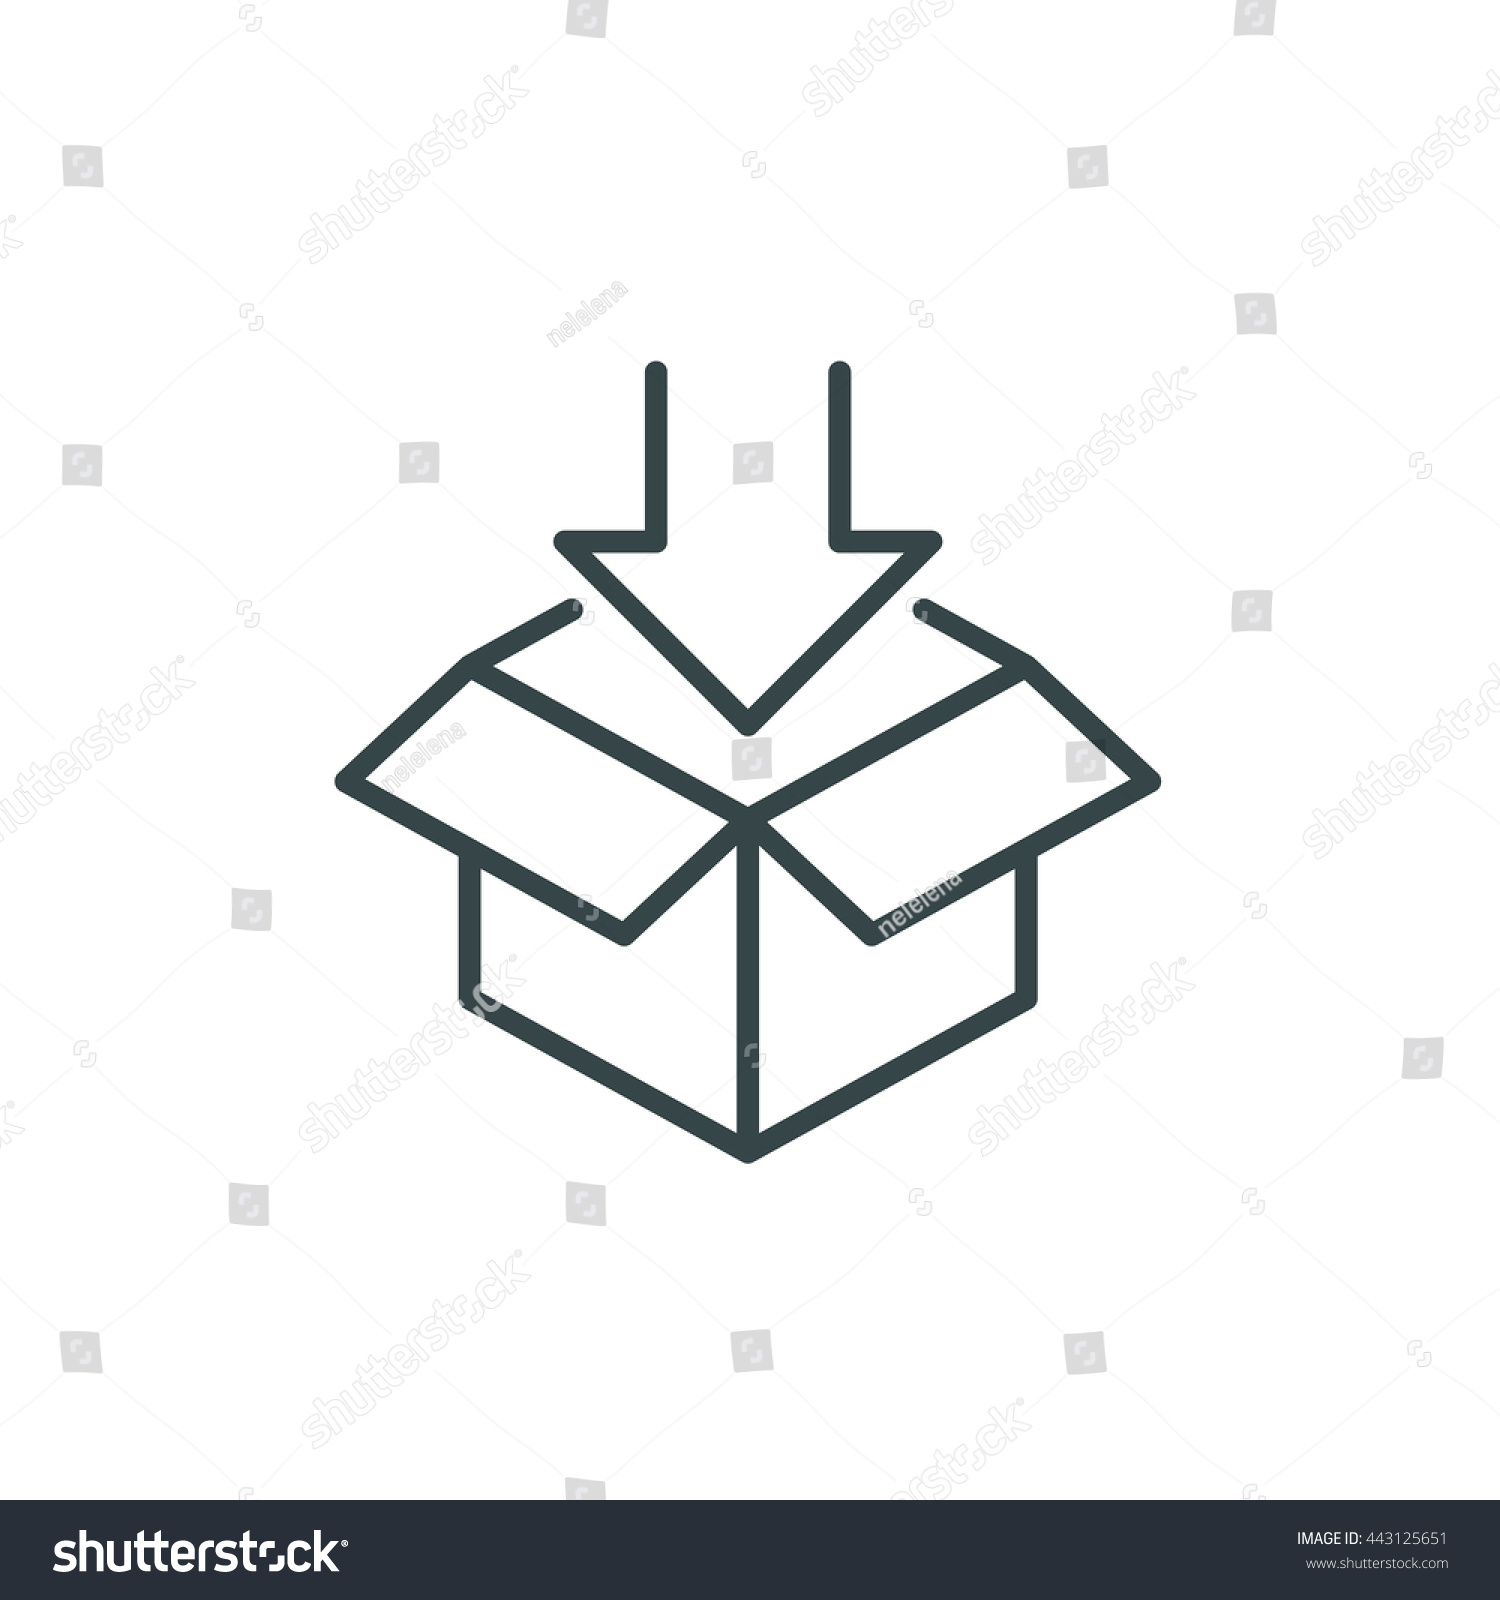 Open box symbol symbol packaging download stock vector 443125651 open box symbol symbol of packaging download eps vector illustration biocorpaavc Choice Image